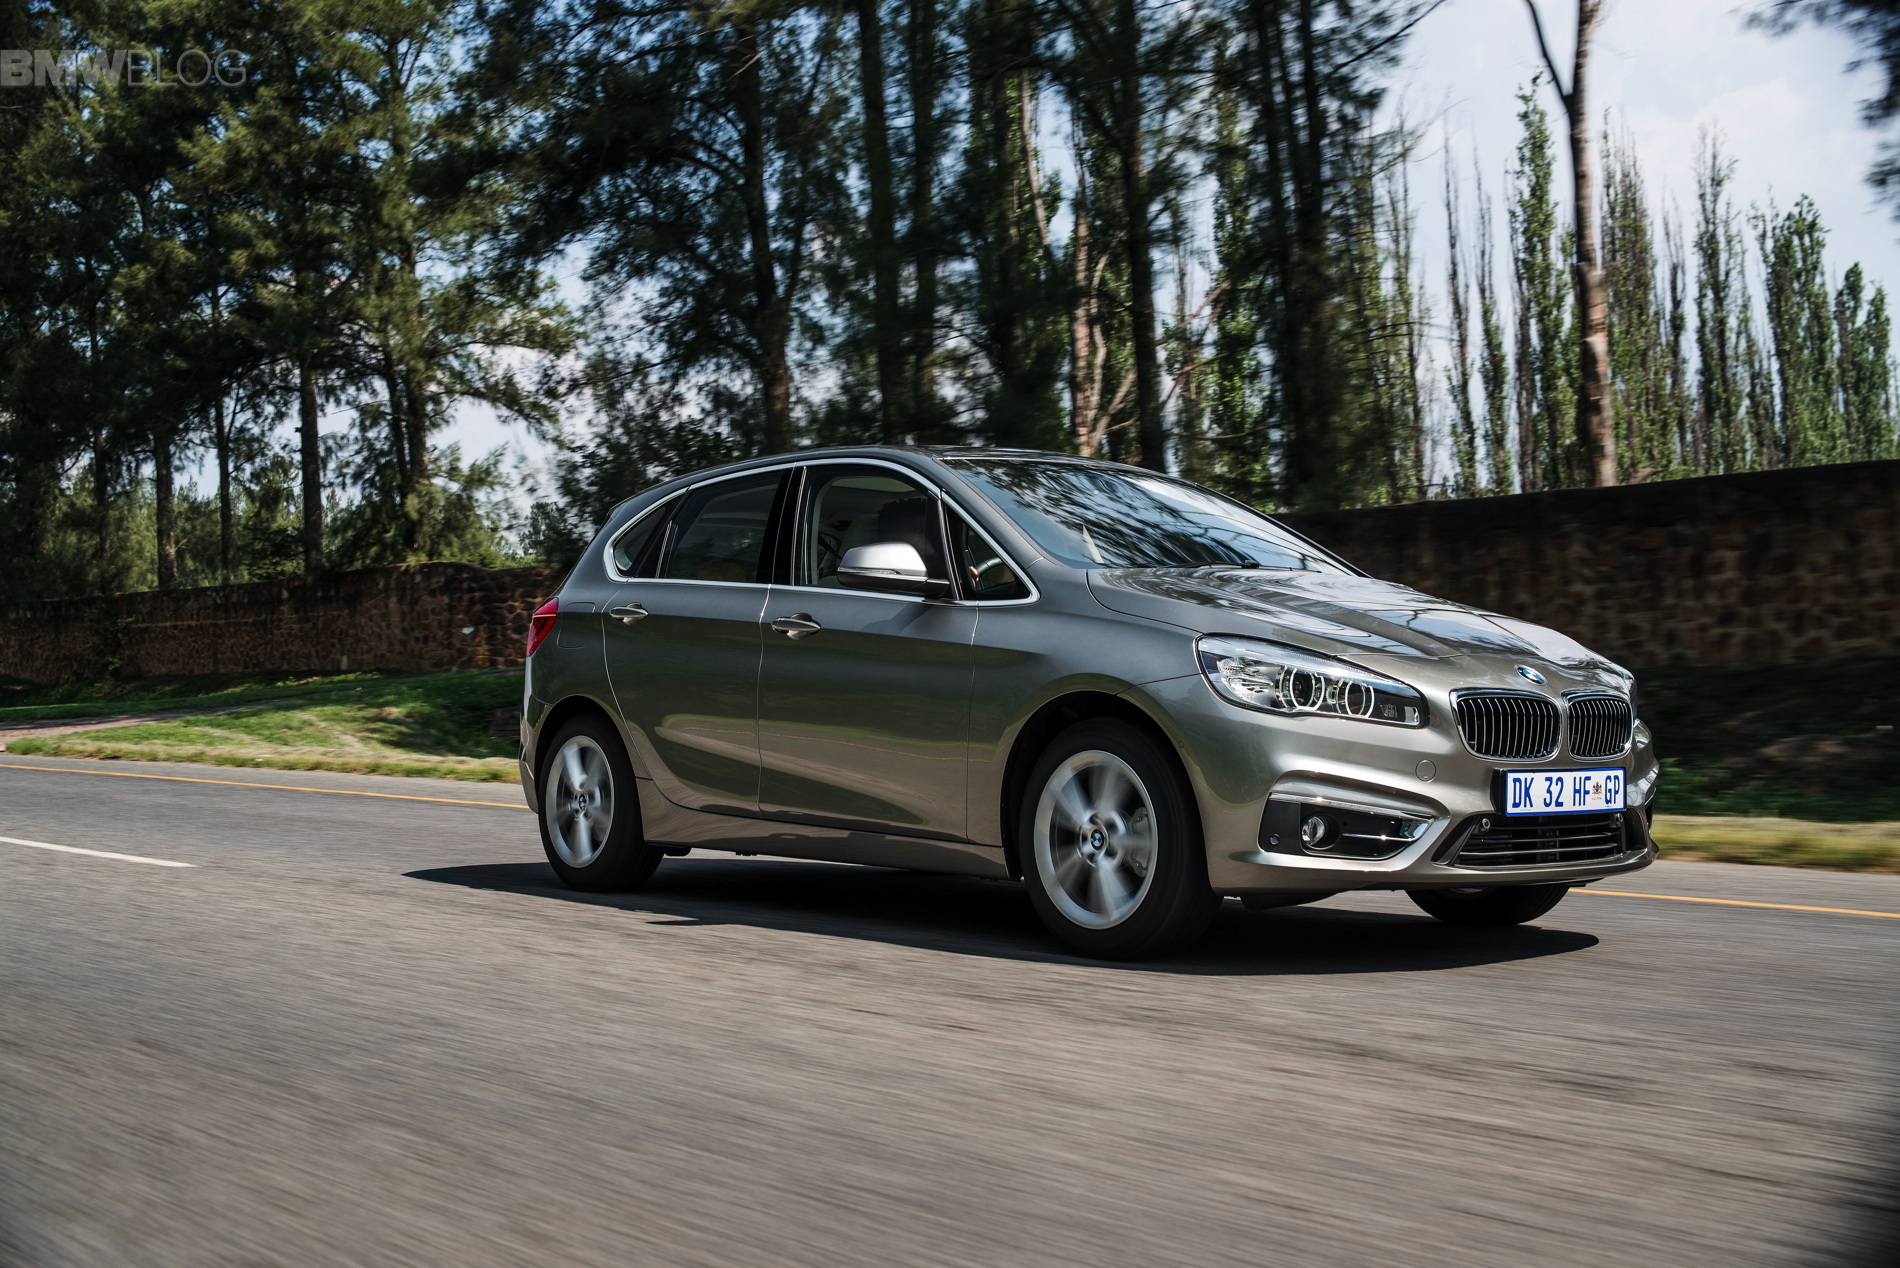 BMW 2 Series Active Tourer South Africa 30